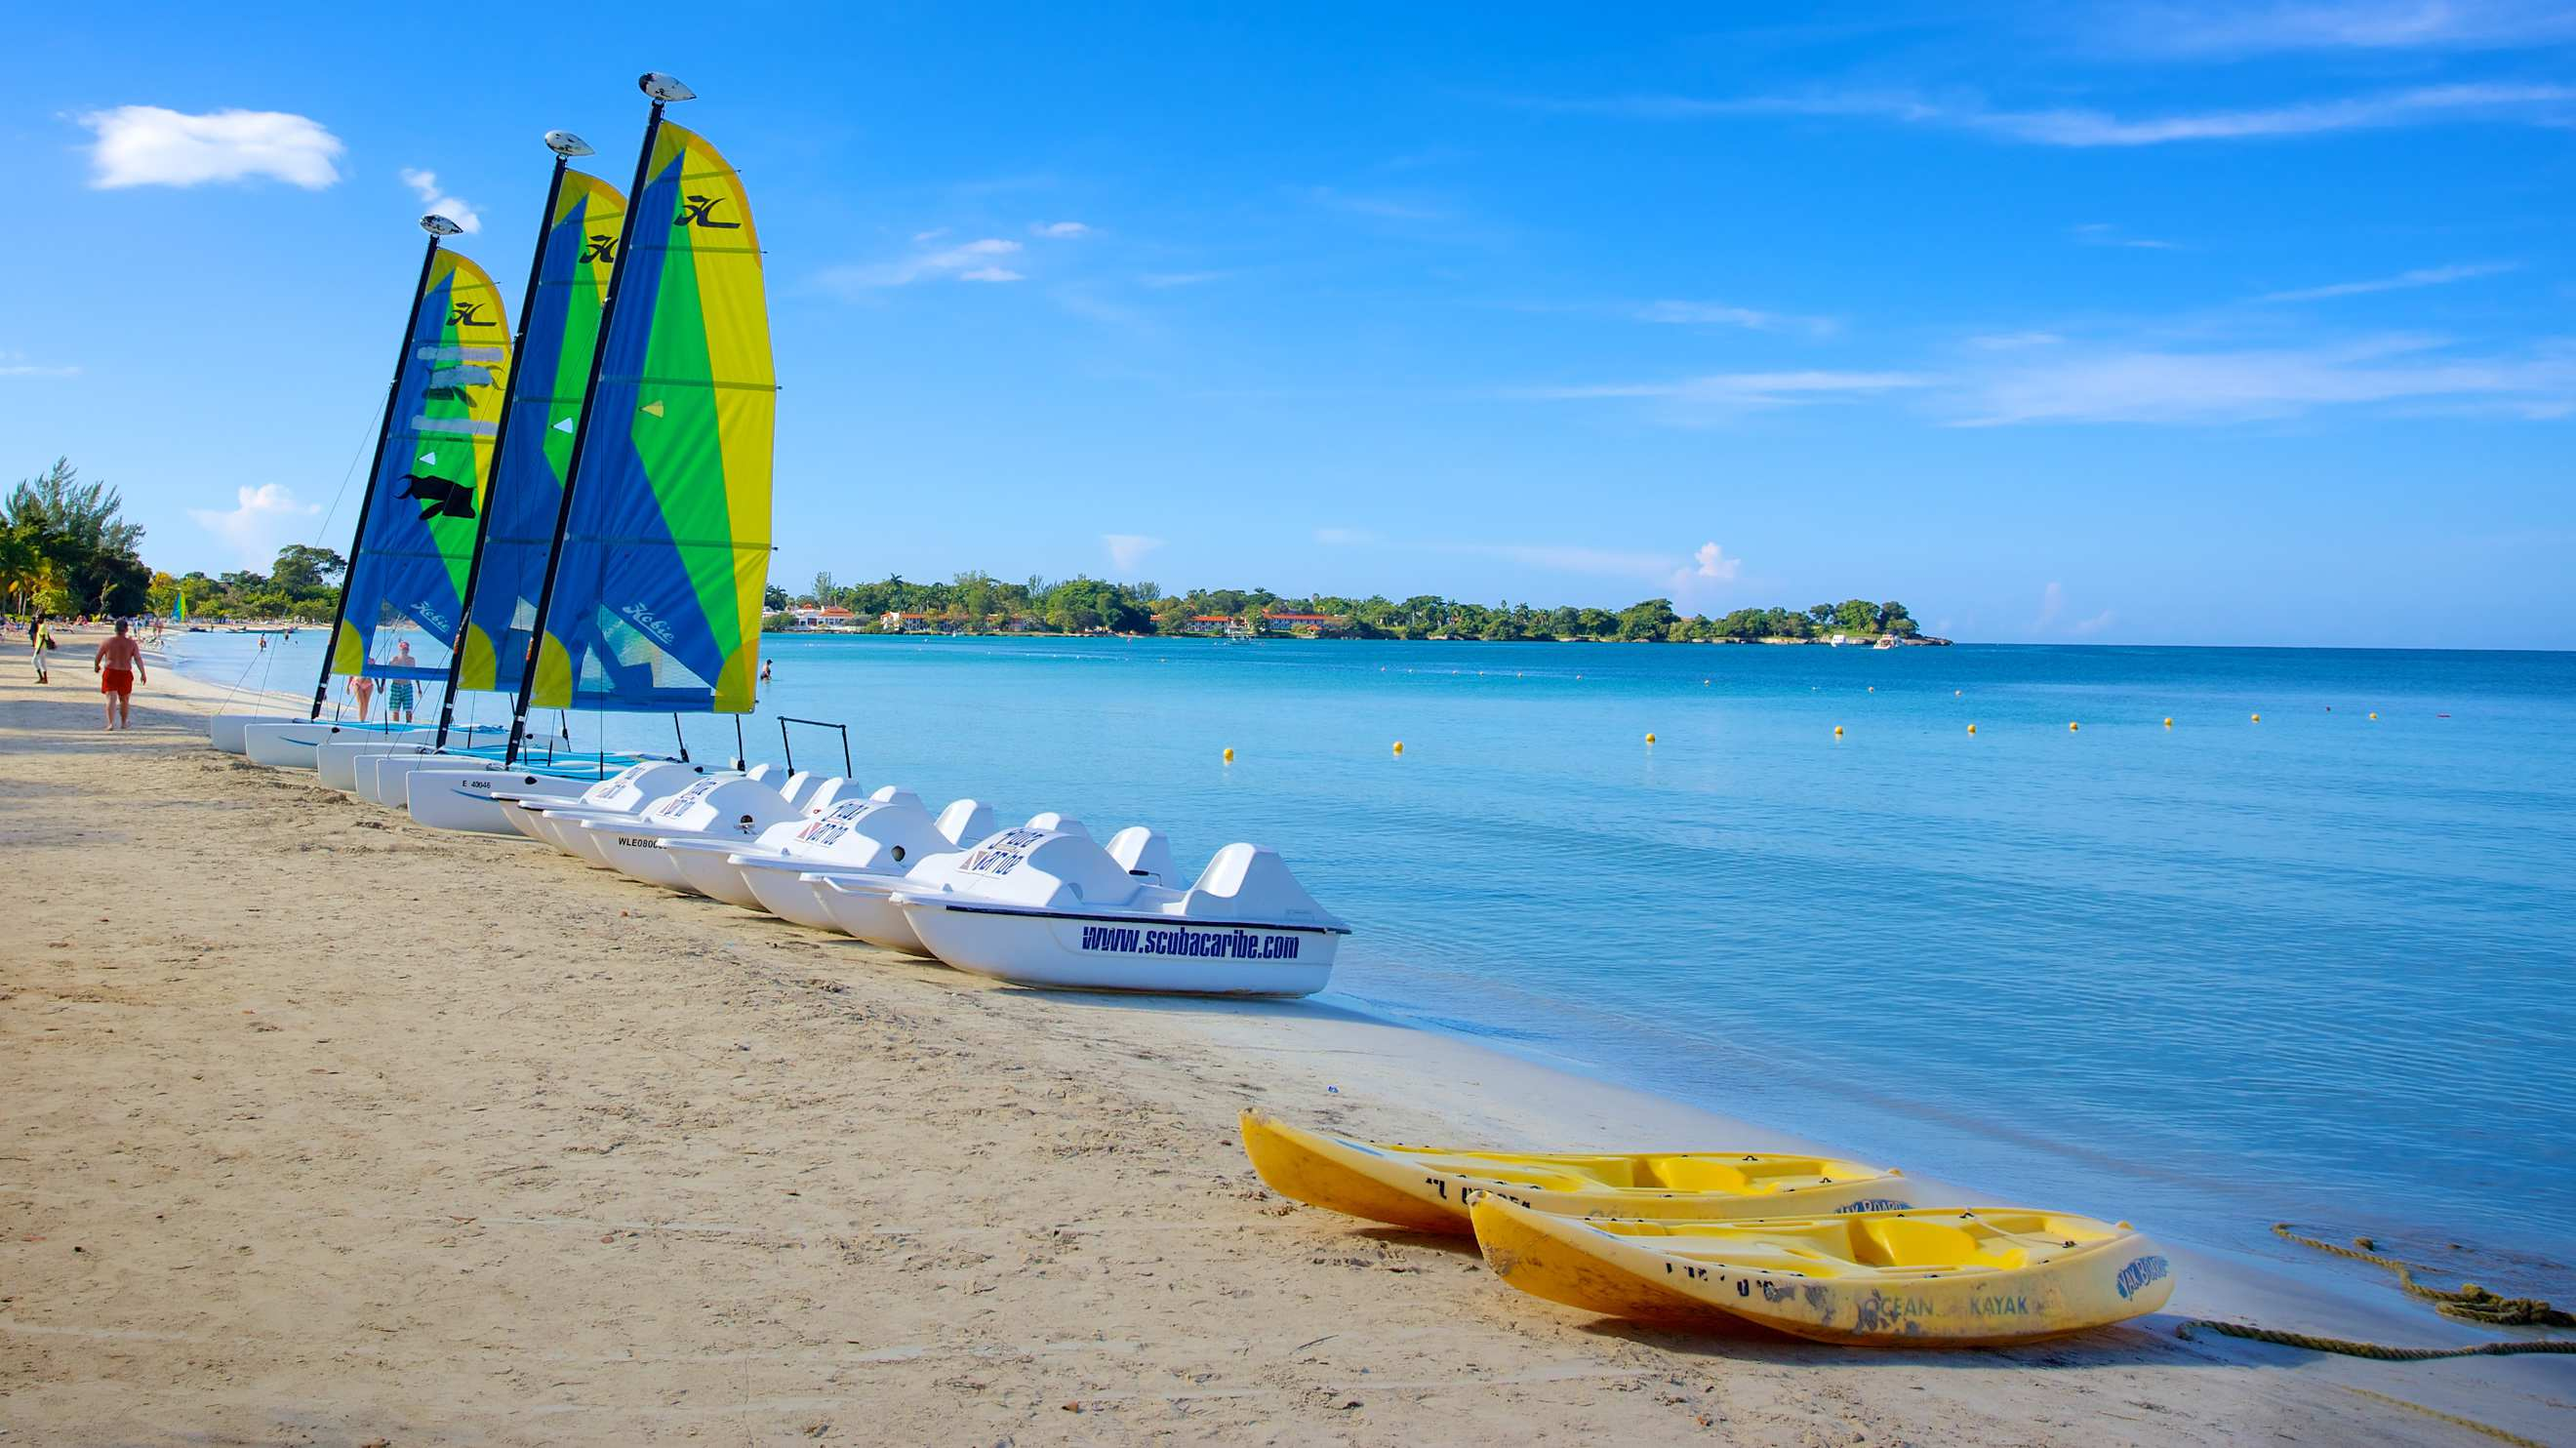 Save Up To583Expedia Negril 2019Packageamp; Vacations VMGUpqzS